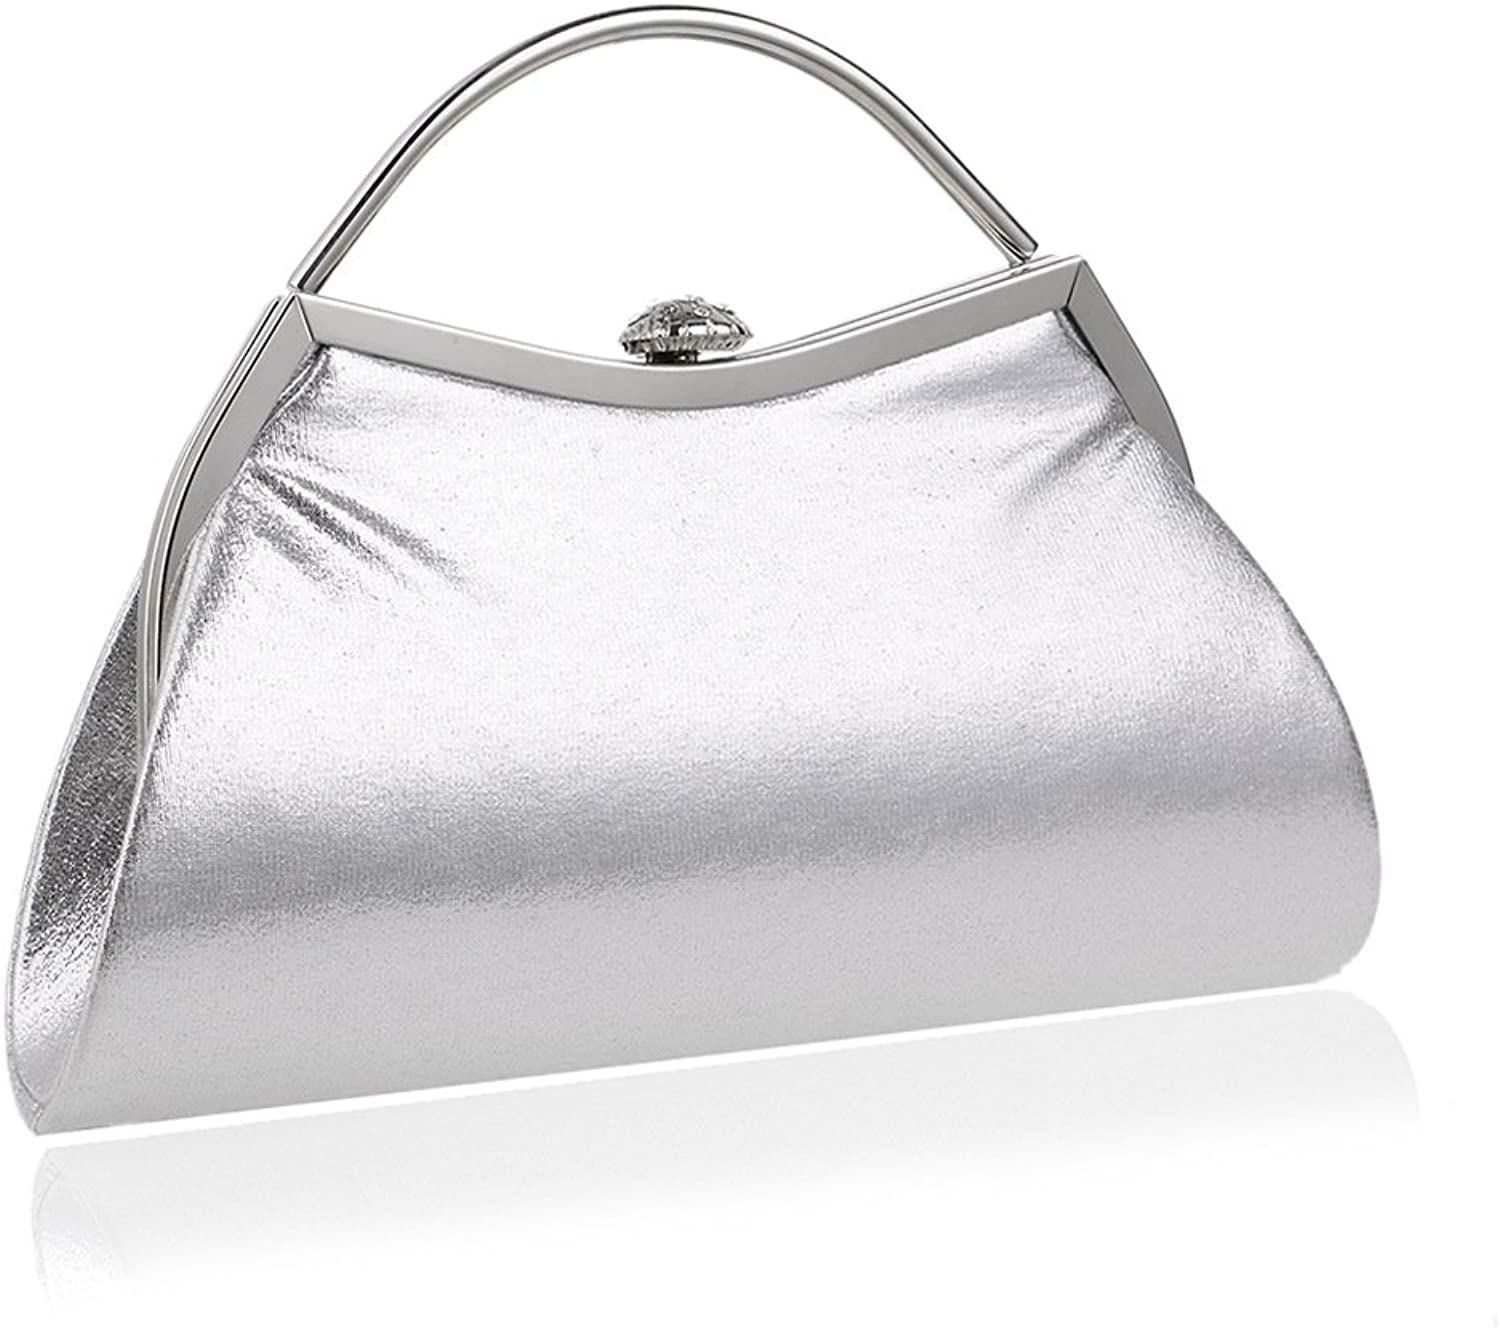 LBY Fashion Candy color Mobile Bag Luxury Party Star Evening Clutch Nightclub Dinner Bag Evening Package (color   Silver)